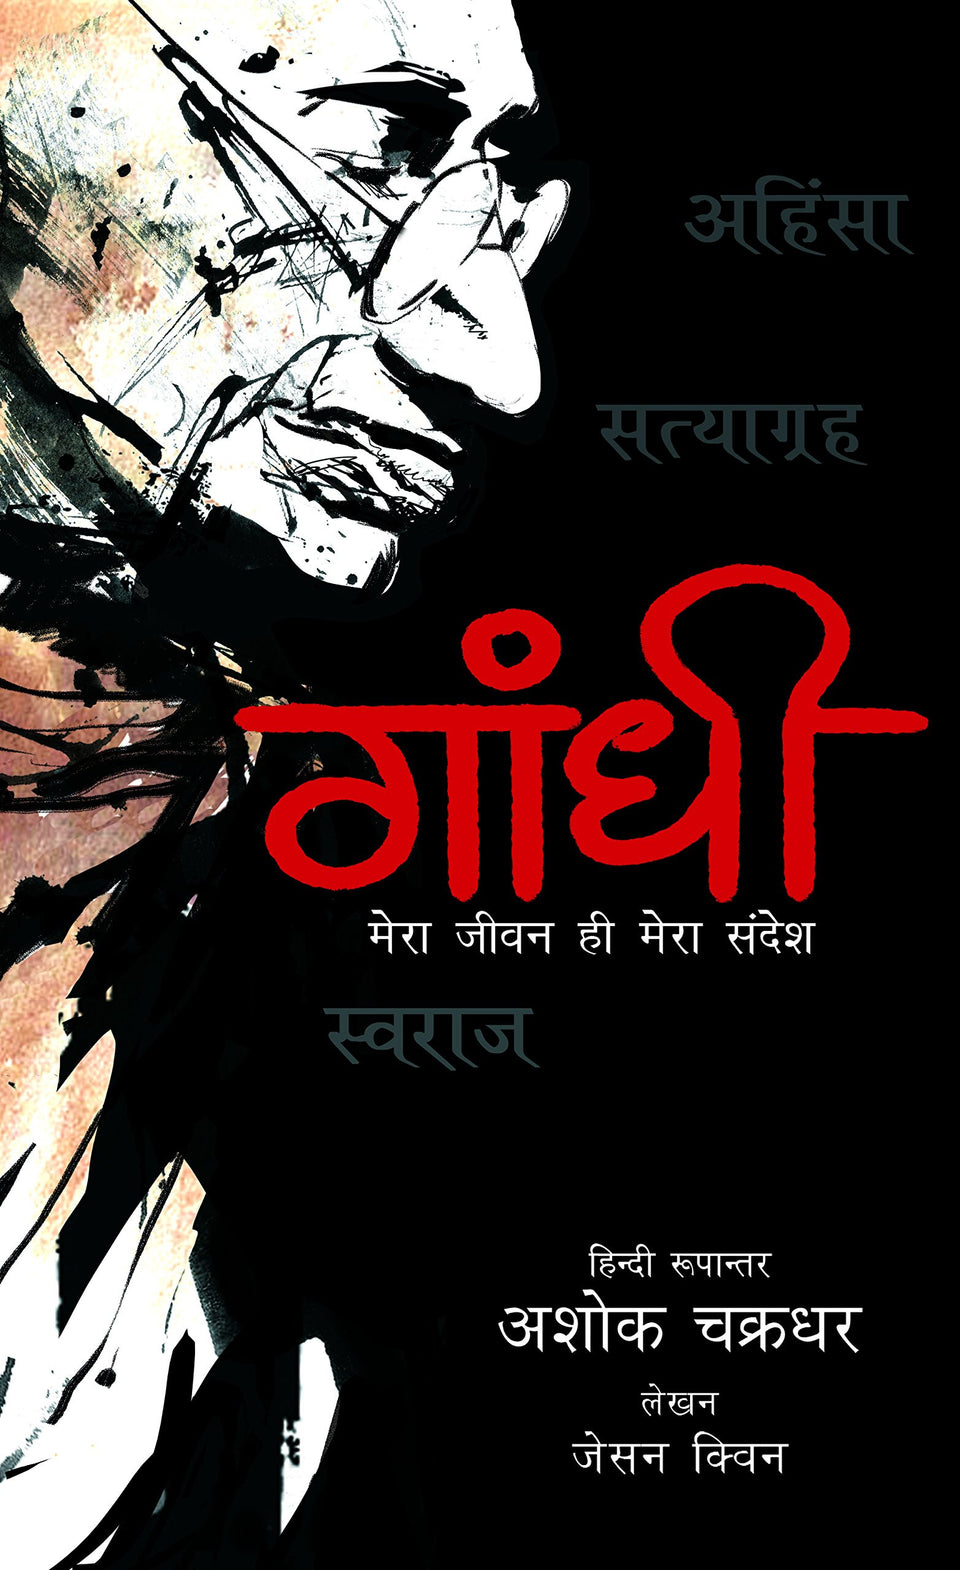 Gandhi Mera Jeevan Hi Mera Sandesh Graphic Novel - www.entertainmentstore.in